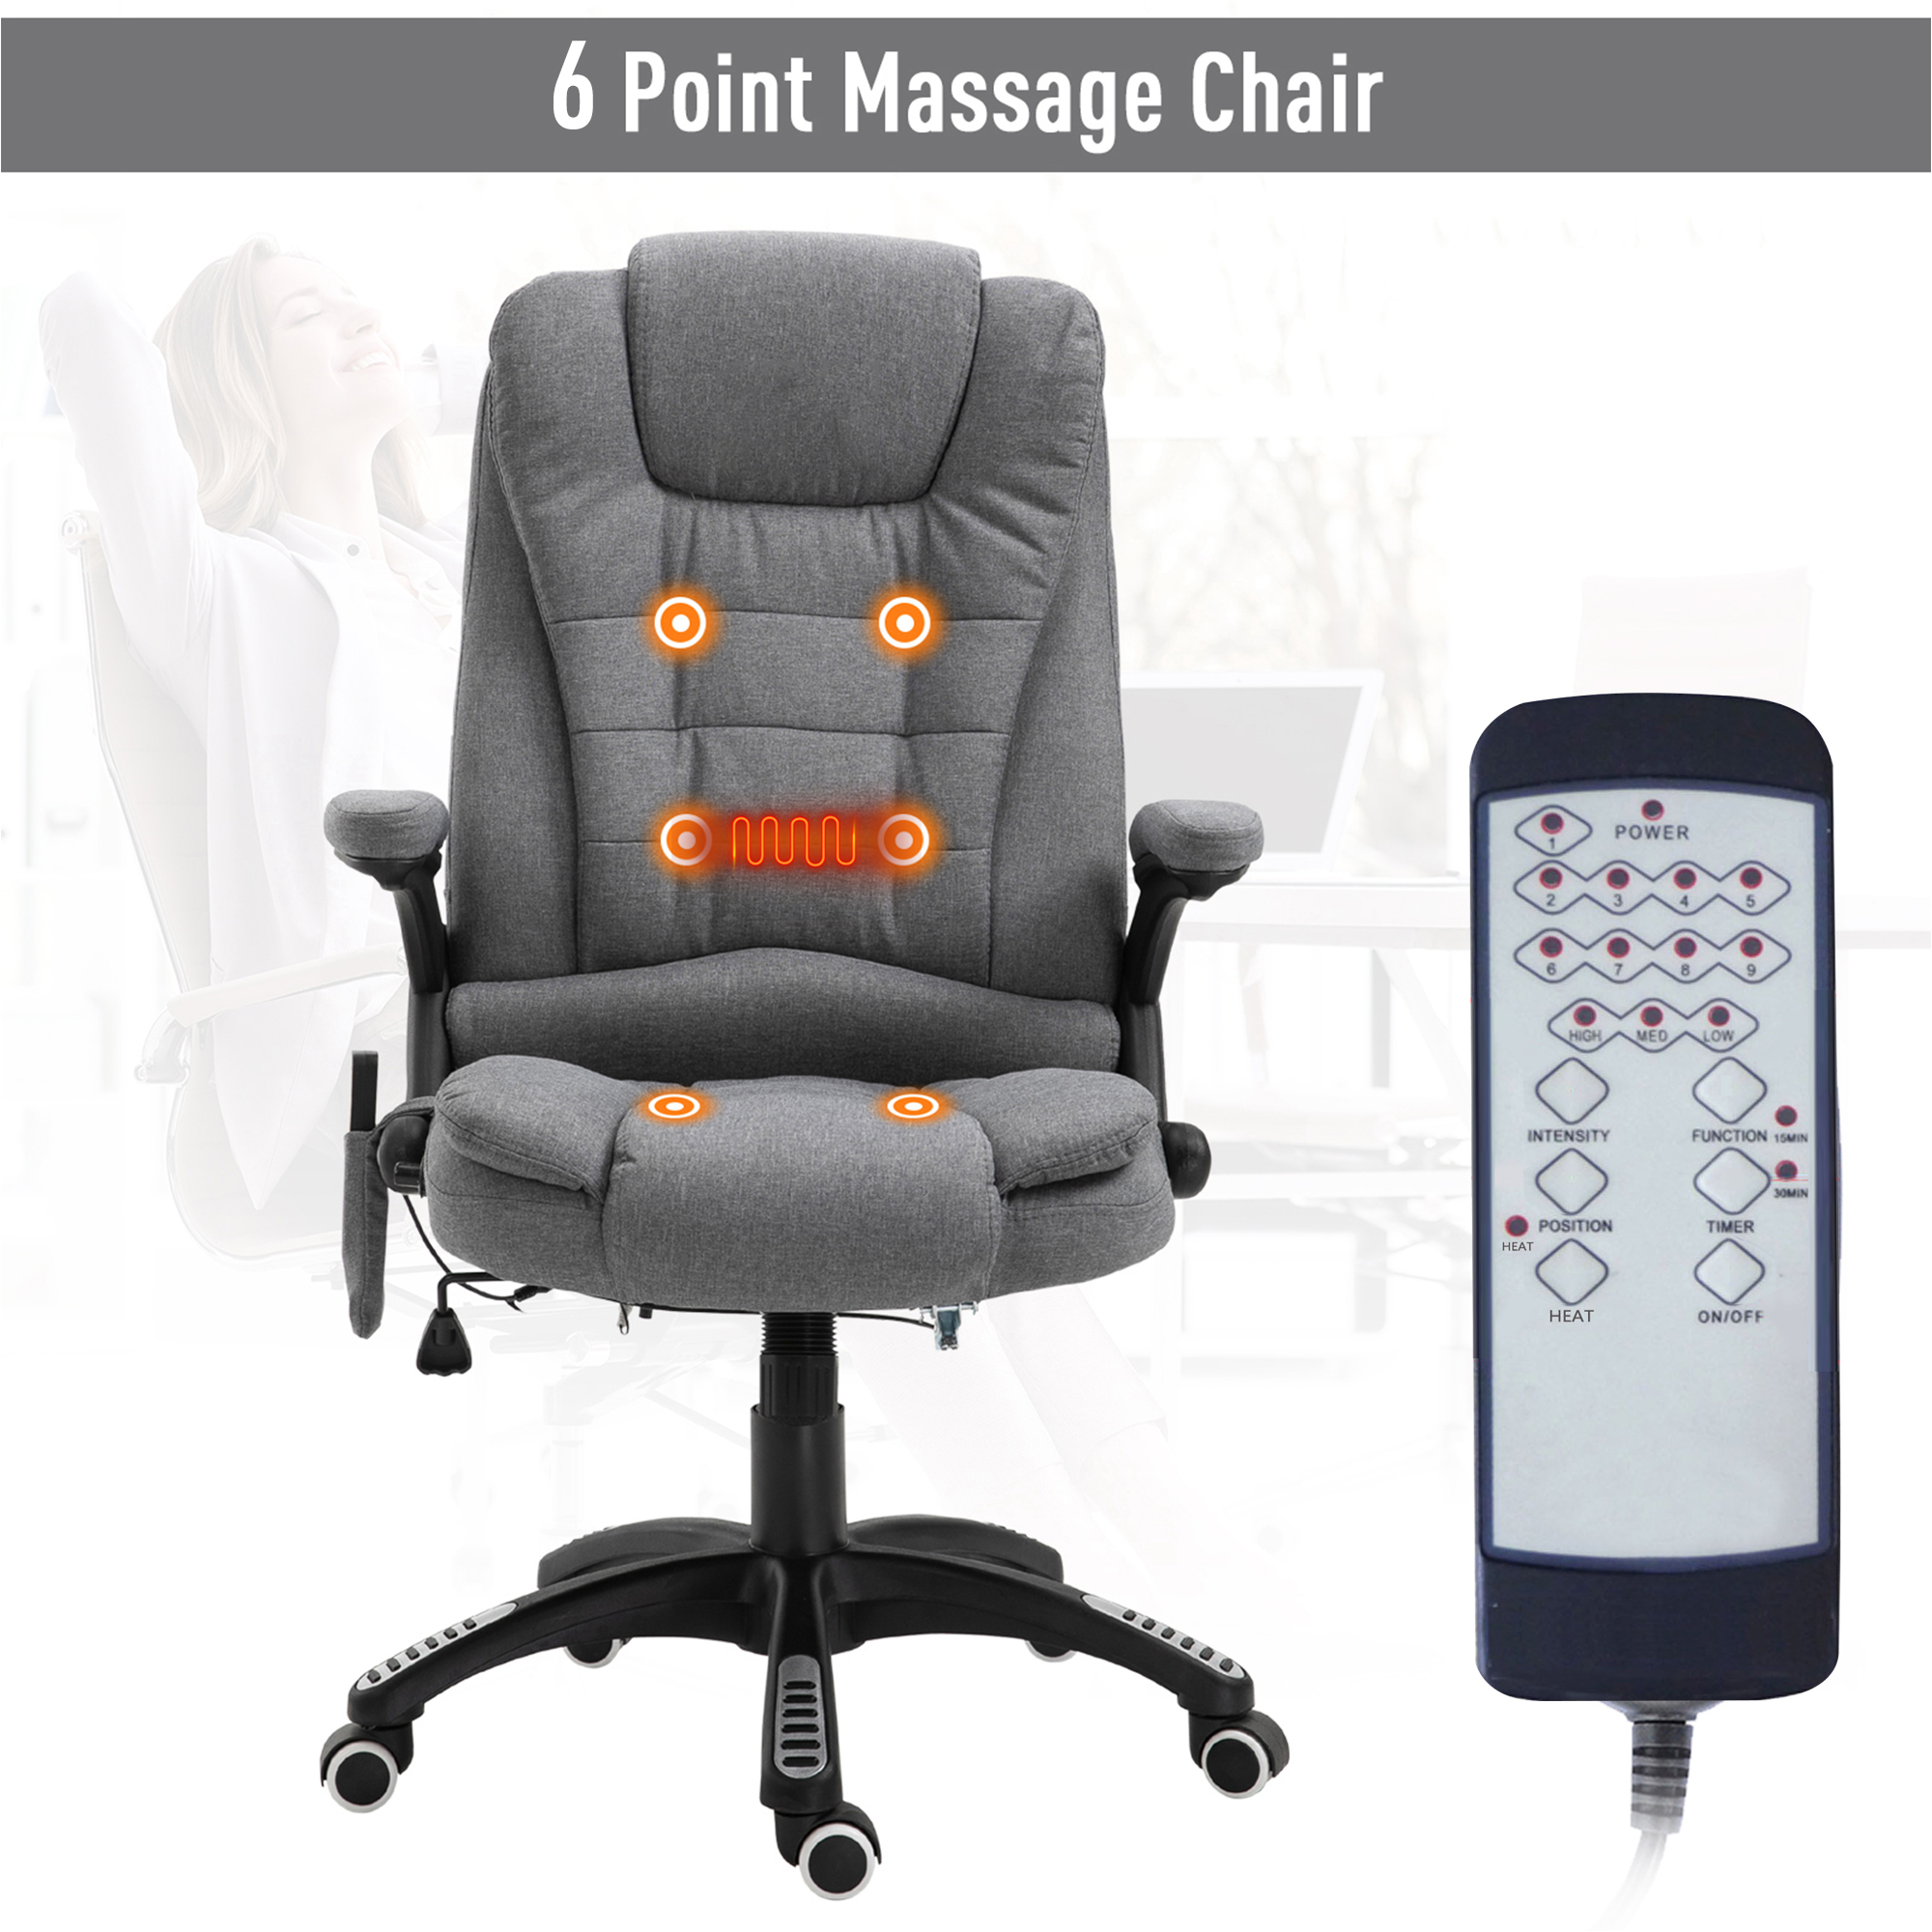 thumbnail 15 - Executive Reclining Chair 130°w/6 Heating Massage Points Relaxing Headrest